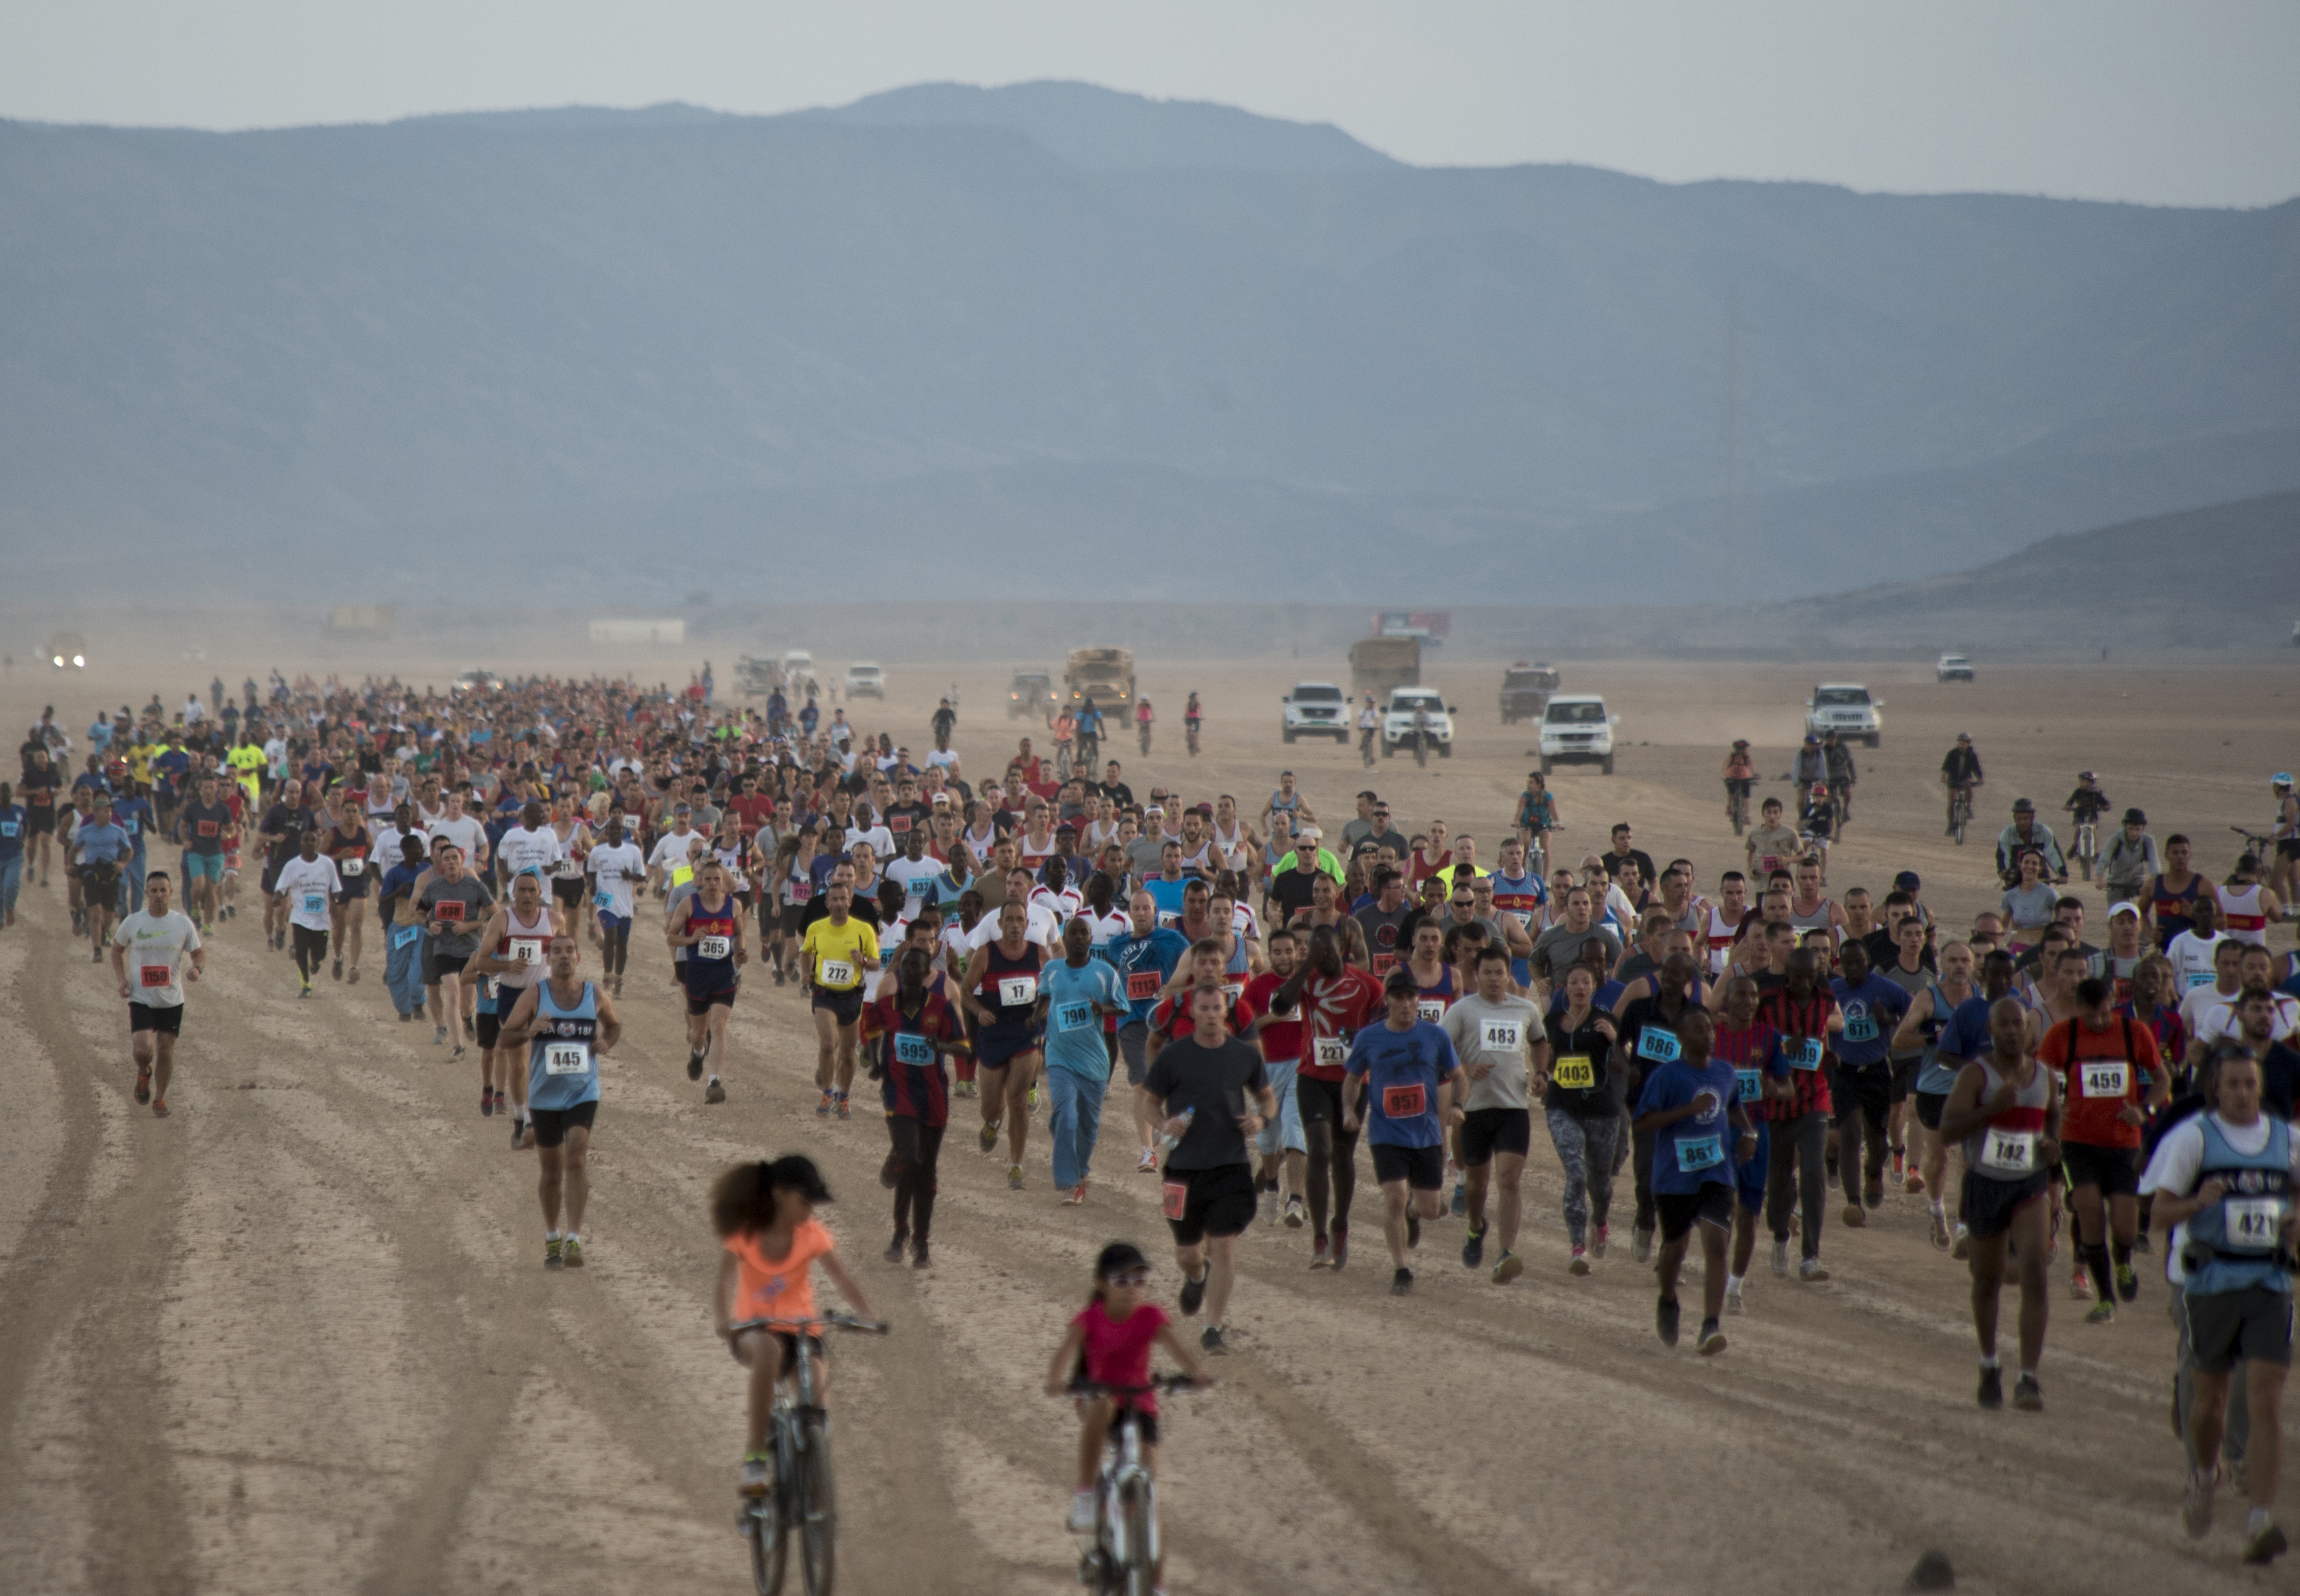 Runners make their way across the Grand Bara Desert during the Annual Grand Bara 15K race Dec. 17, 2015, in Djibouti. The Grand Bara run includes runners from American, Japanese, French and local Djiboutian militaries. (U.S. Air Force photo by Senior Airman Peter Thompson)